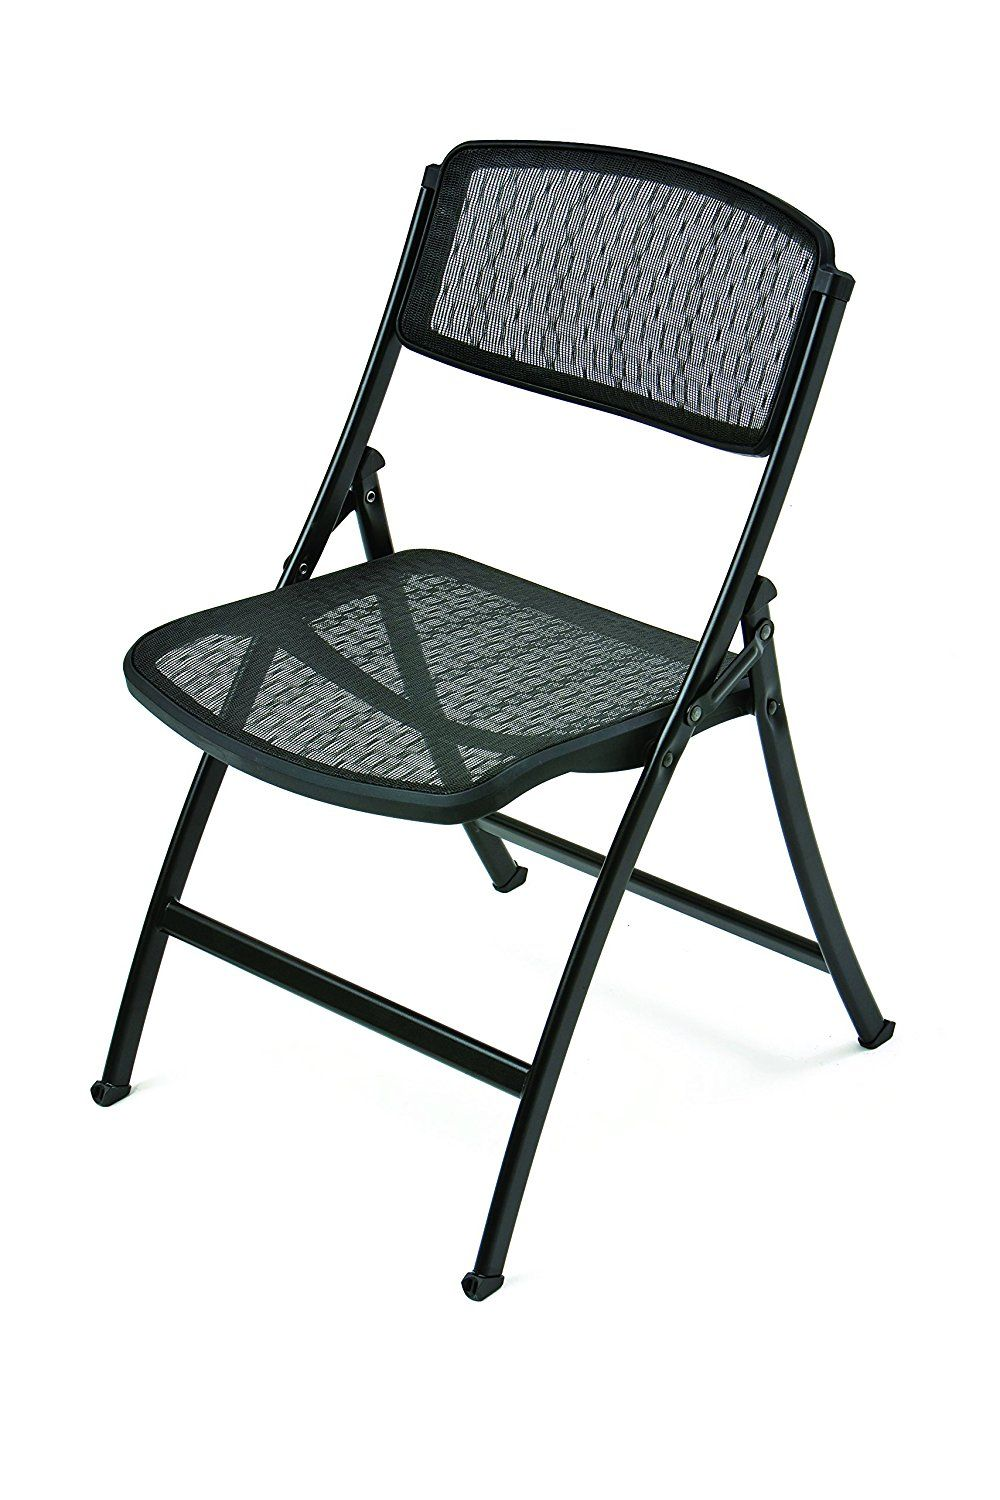 folding guest chair from mitylife